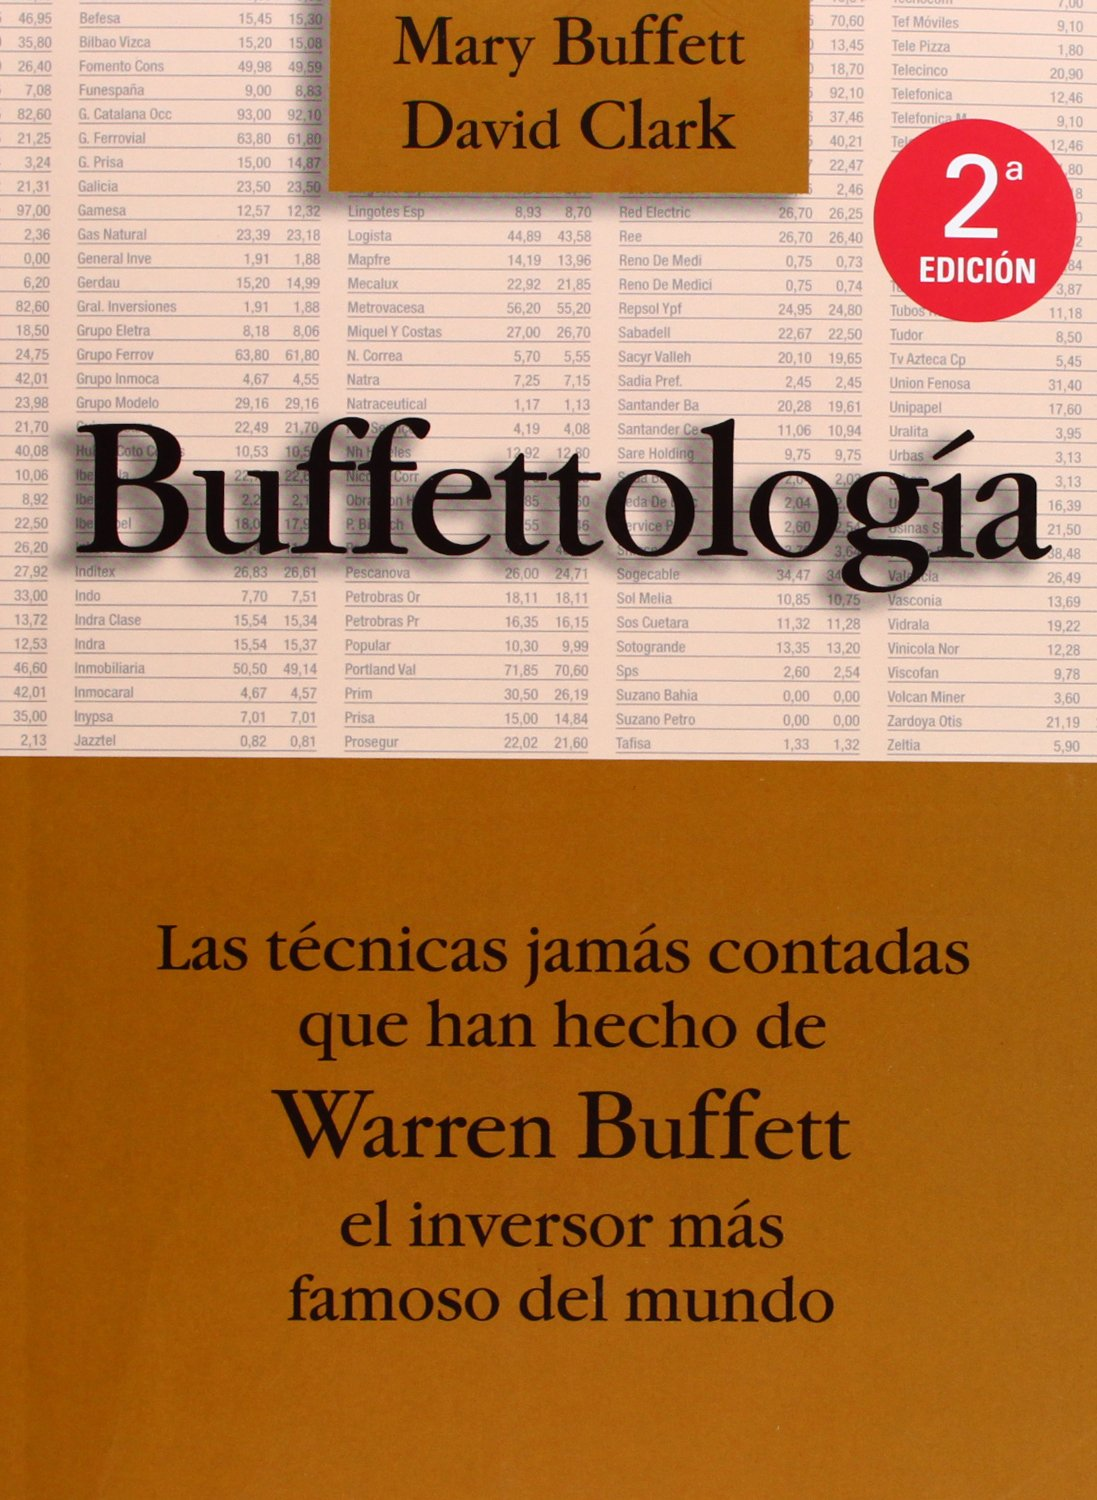 Amazon.com: Buffettologia (9788480885508): Mary Buffett, David Clark: Books